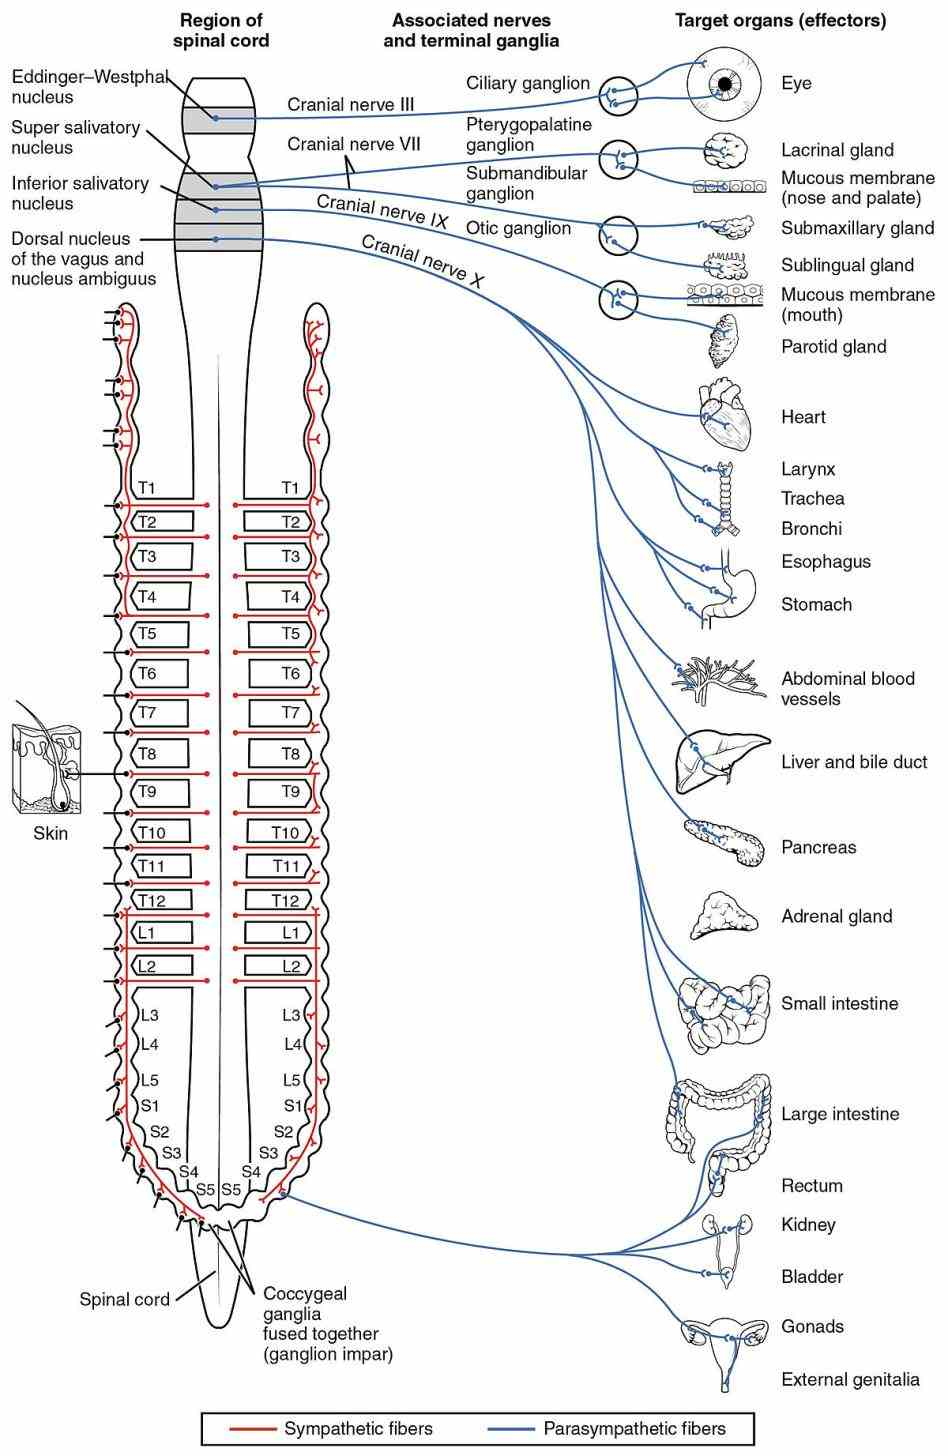 regulates involuntary functions anaesthesia surgery and critical illness lead to a varied degree of the Anatomy Autonomic Nervous System